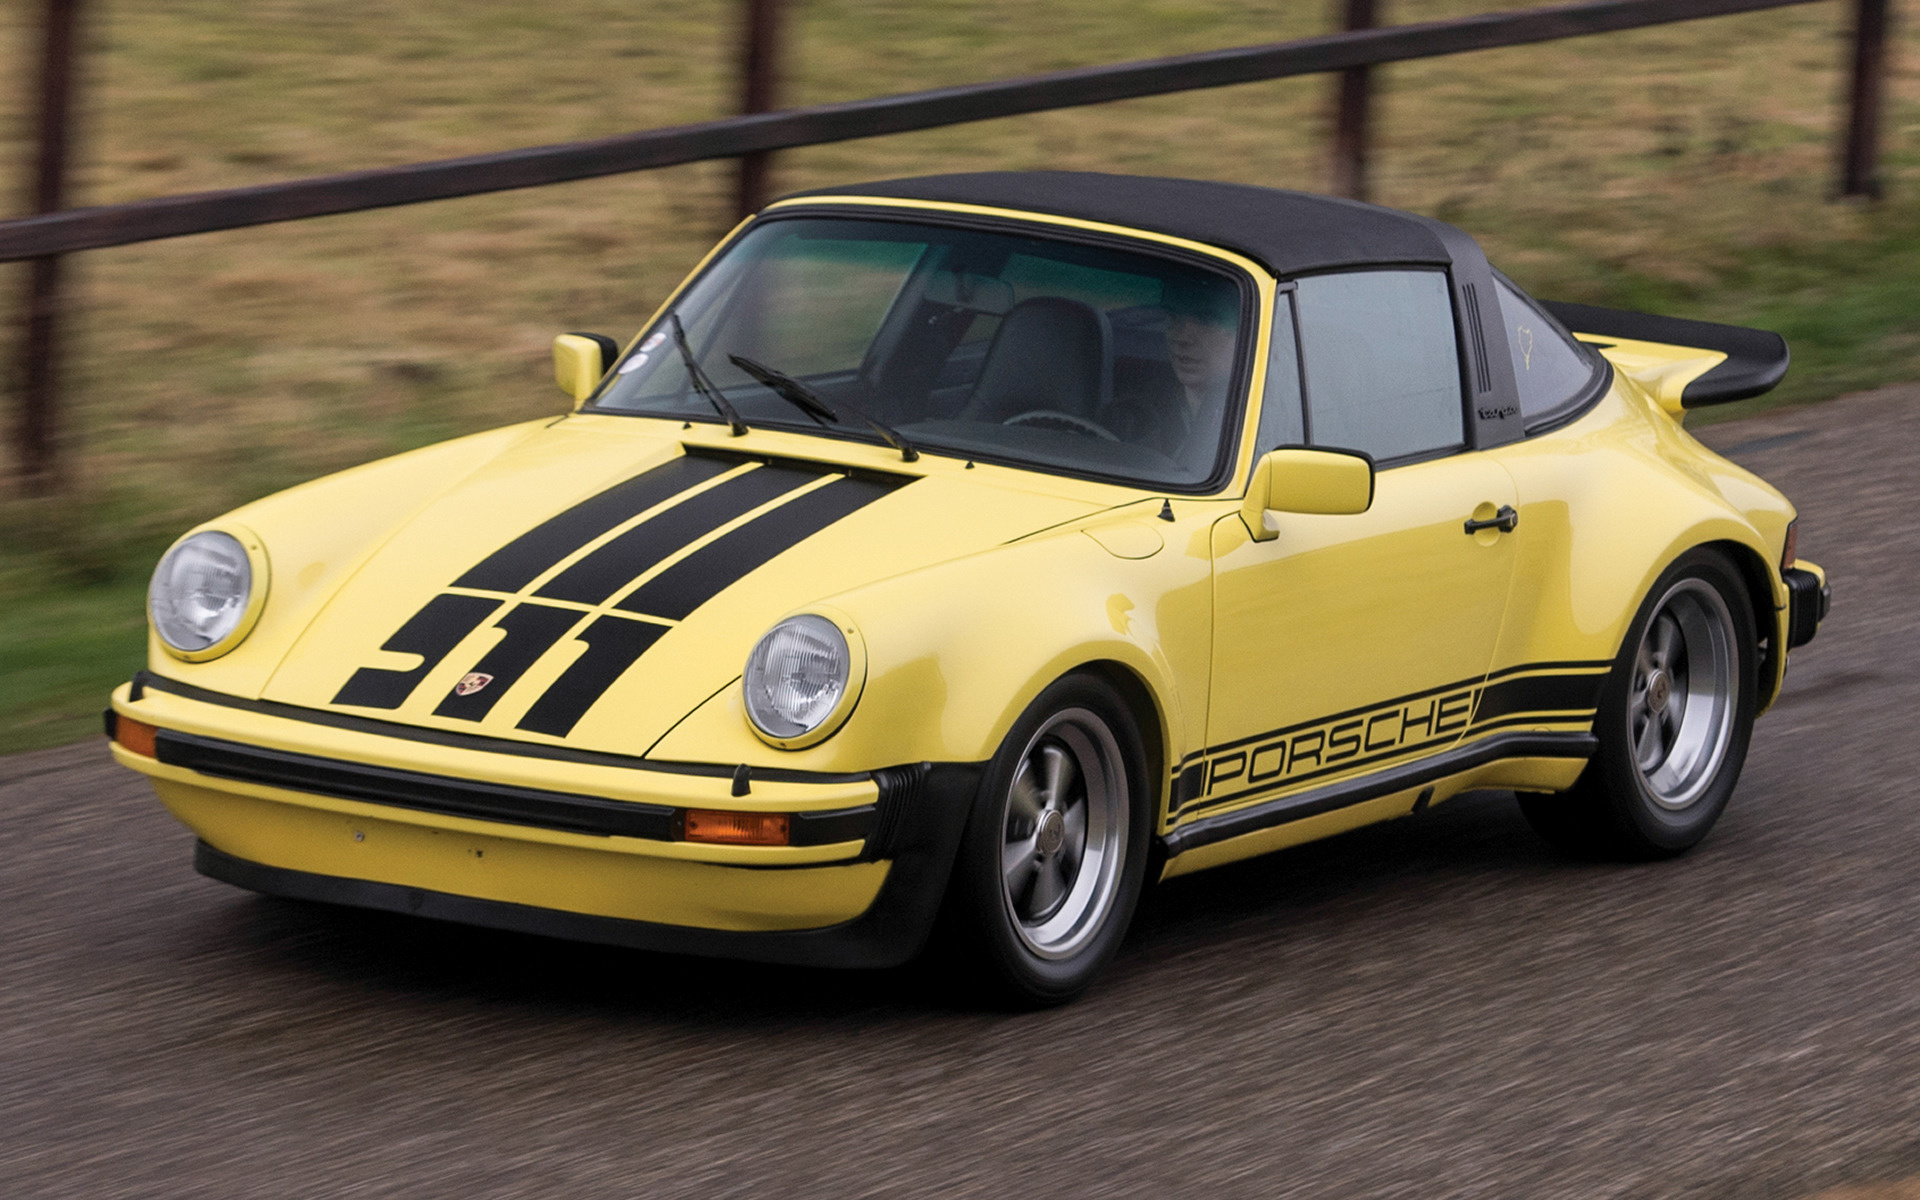 1975 Porsche 911 Carrera Targa with whale tail ...